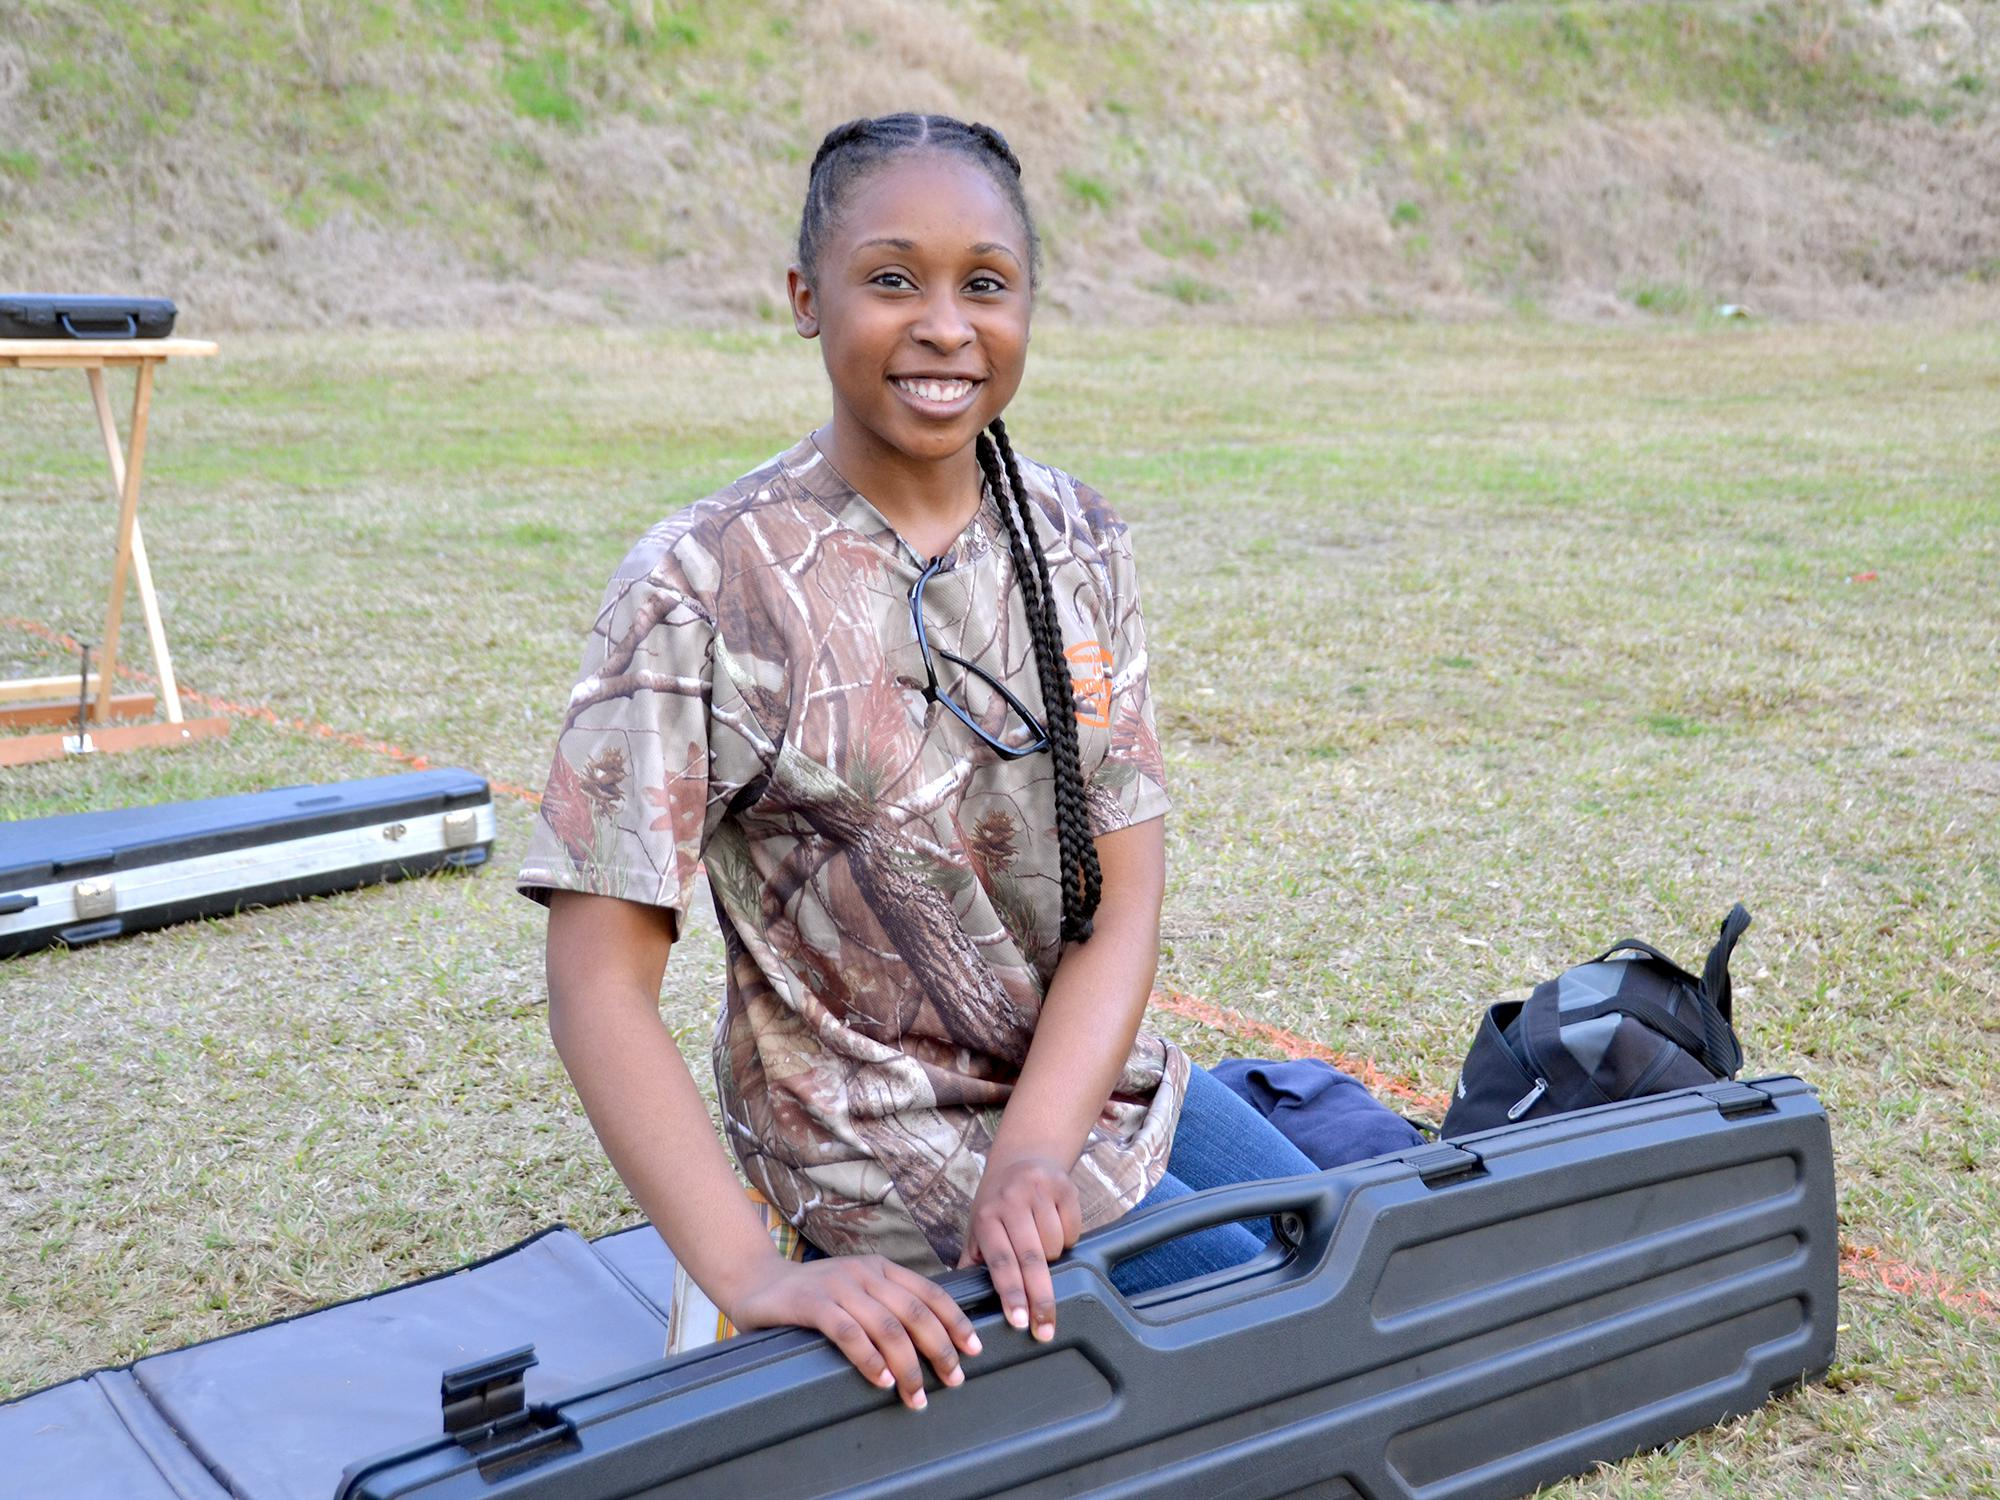 Brandy Barnes, a member of the Mississippi State University Extension Service Hinds County 4-H, prepares for shooting sports practice in Byram on Feb. 29, 2016. She earned one of four spots on the National 4-H Shooting Sports Championship team and will compete in the .22-caliber rifle division in Grand Island, Nebraska, June 26-July 1, 2016. (Photo by MSU Extension Service/Susan Collins-Smith)